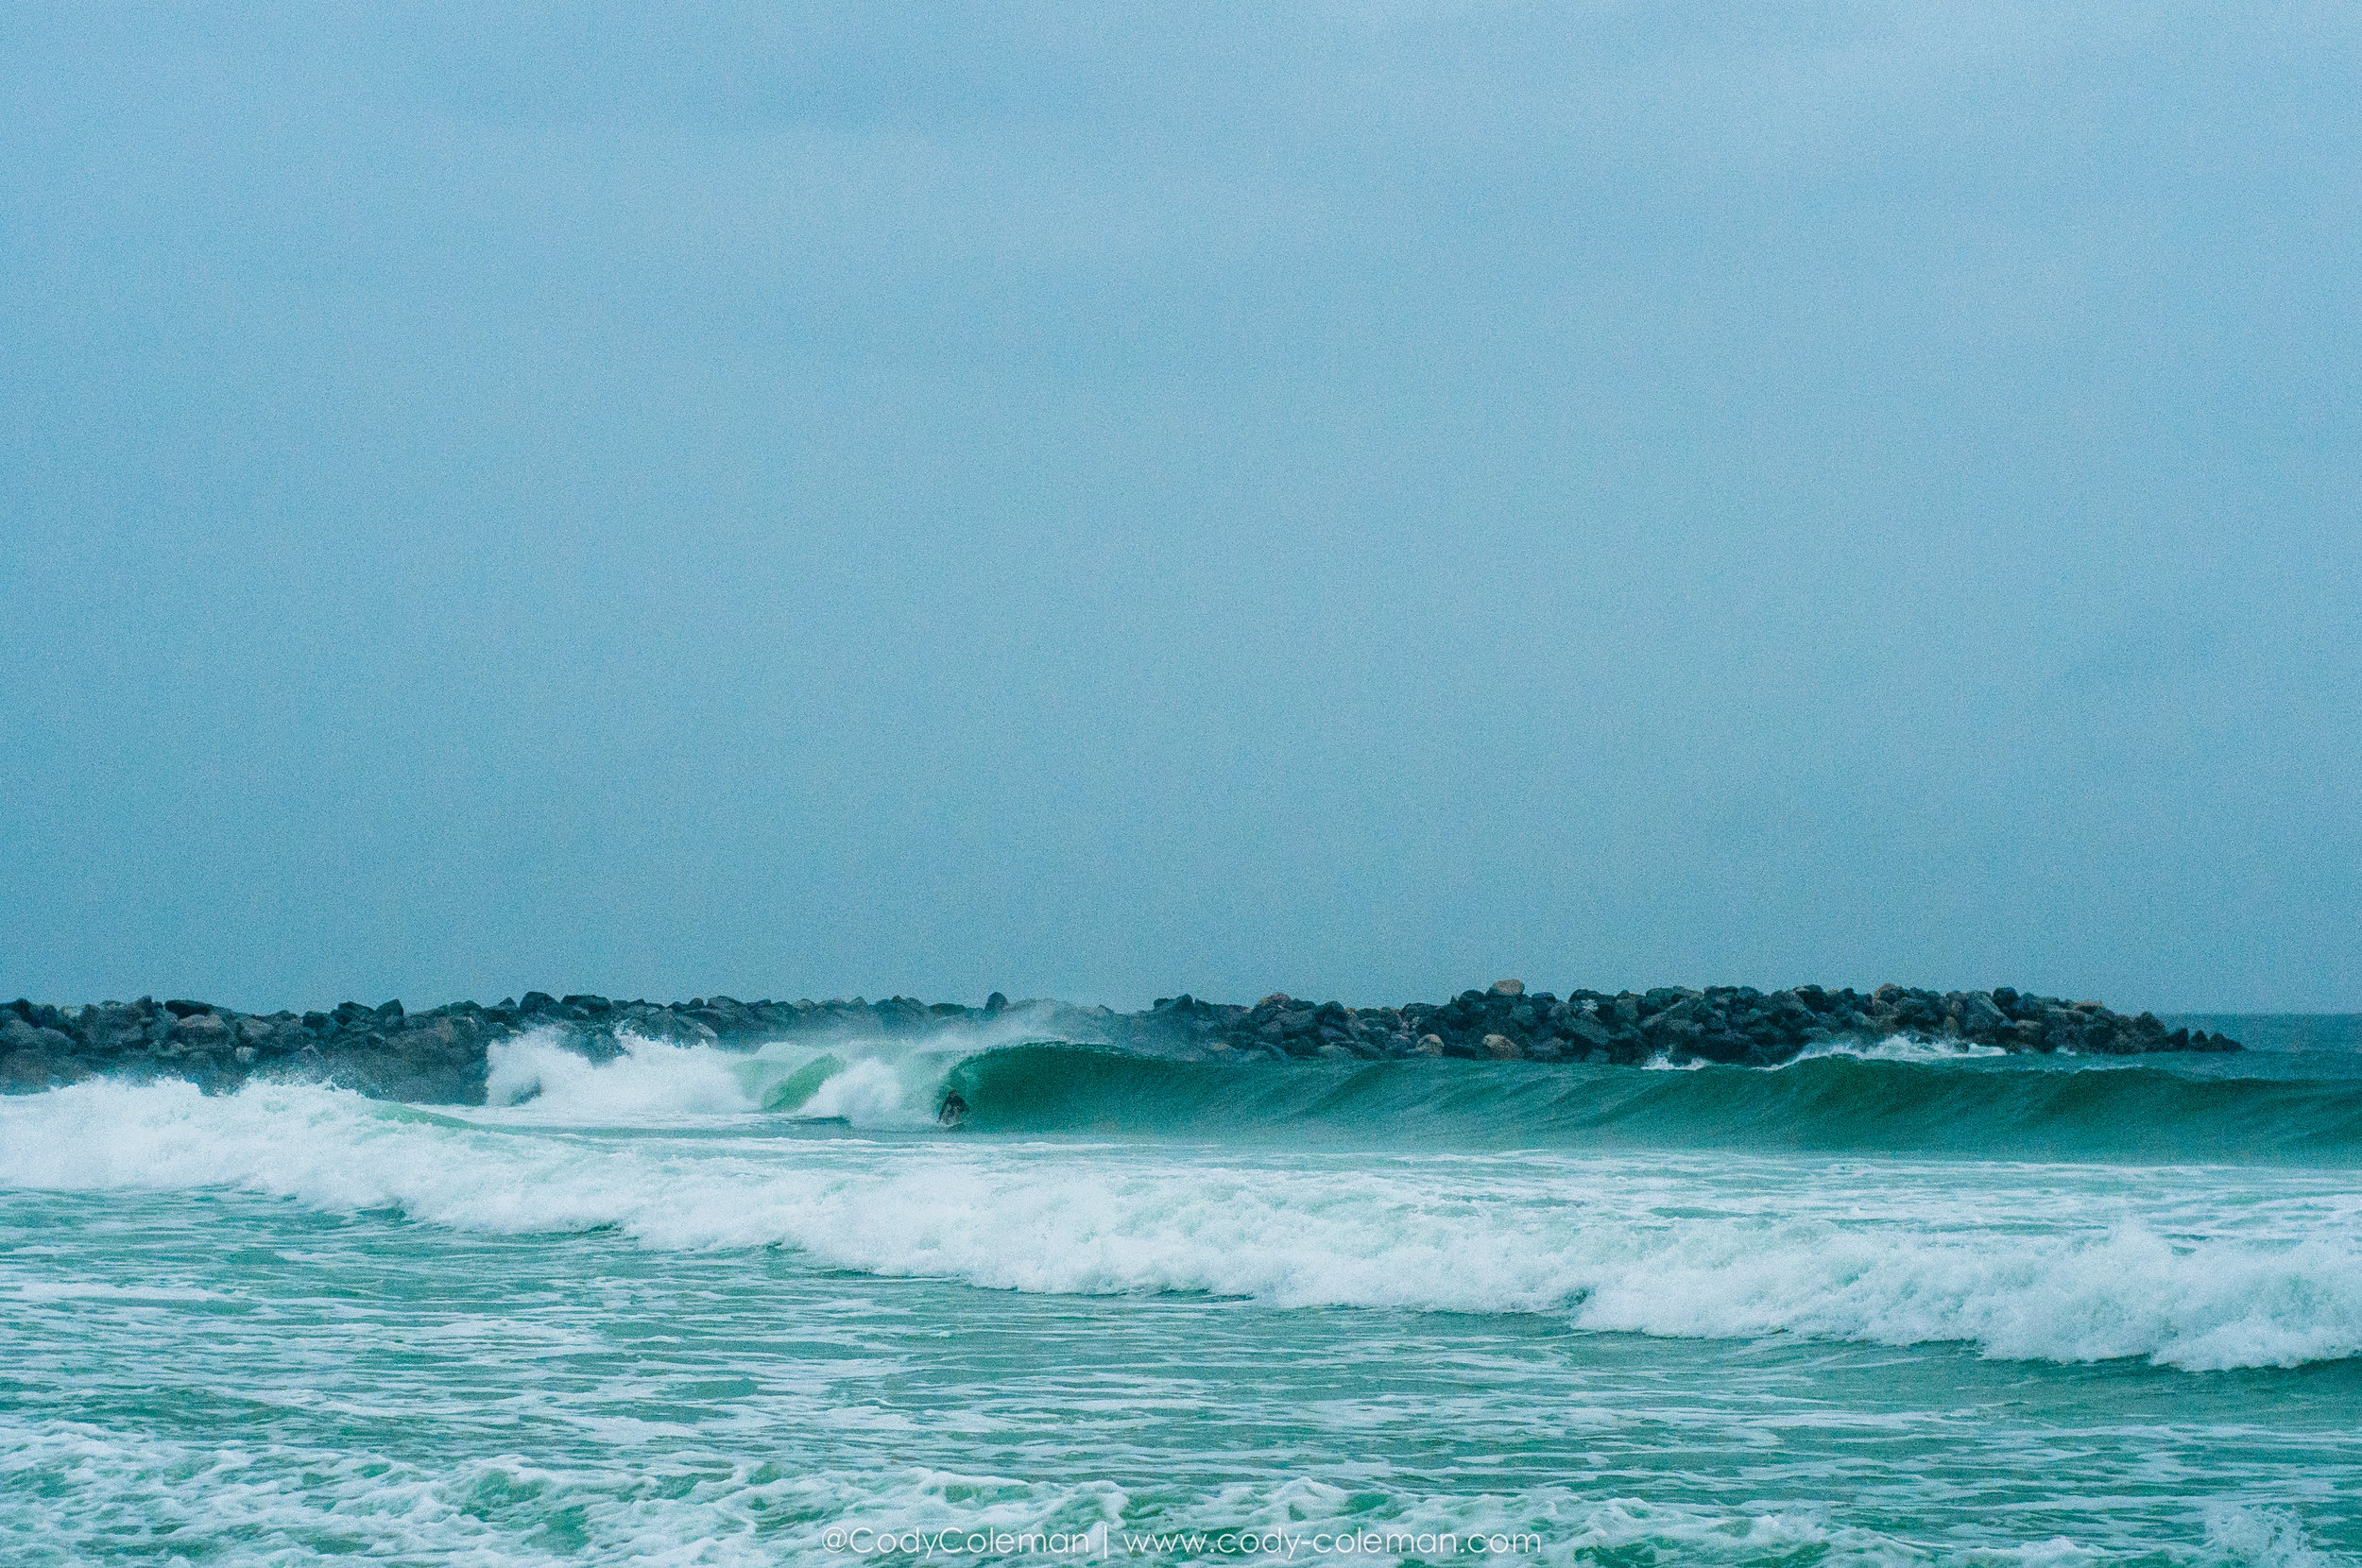 Back up the beach for a another drift & I spot Matthew Glenn grabbing rail to pulling into a mental one.